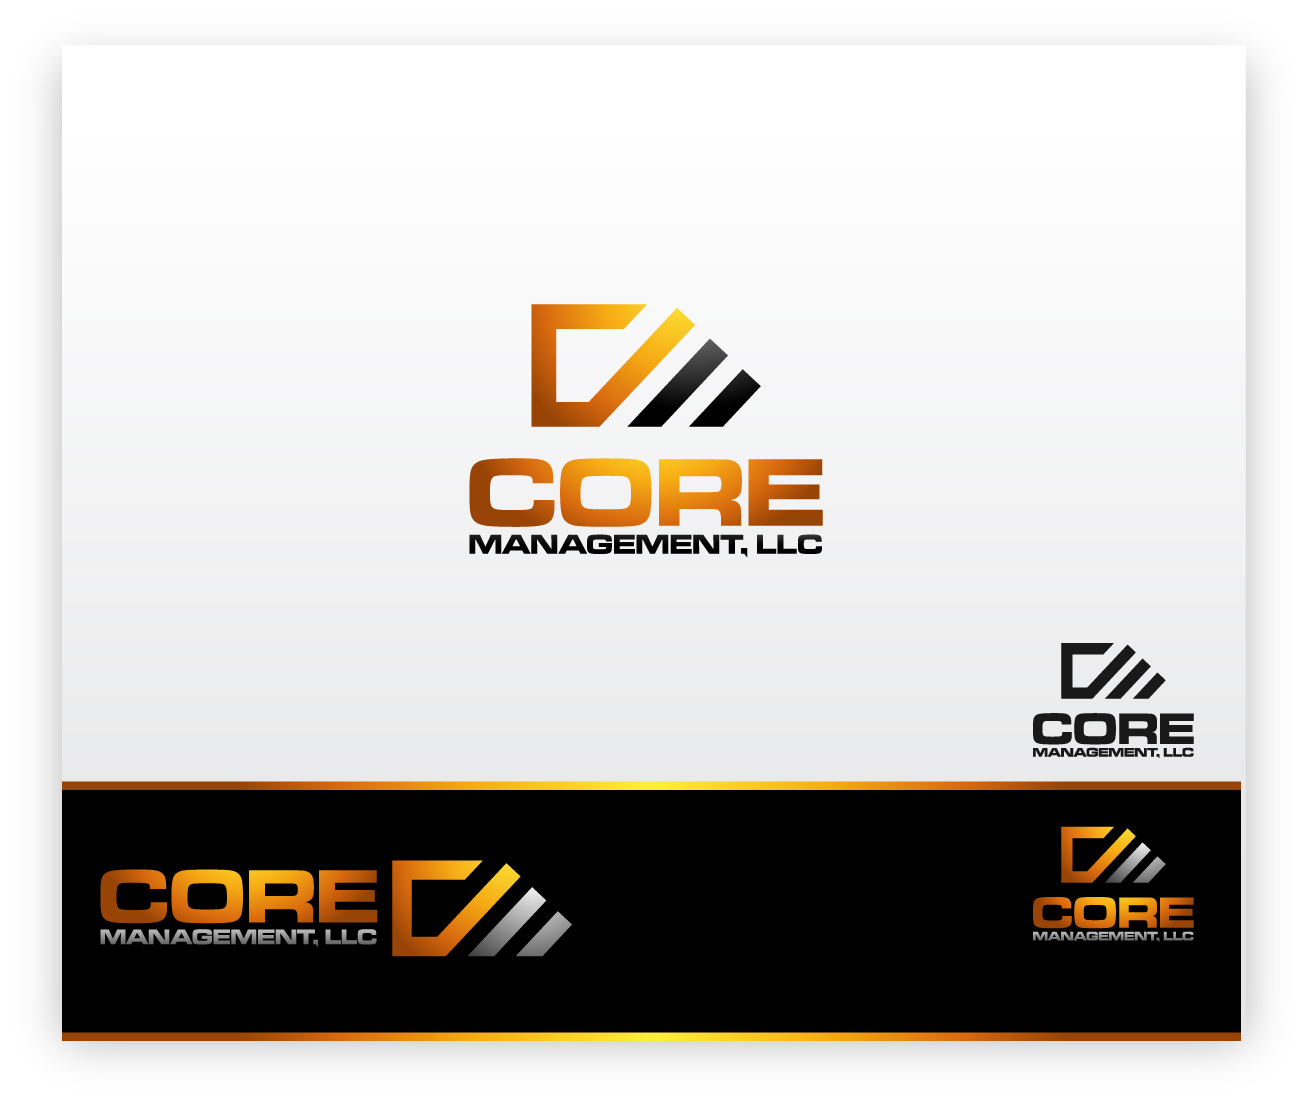 Logo Design by zoiDesign - Entry No. 139 in the Logo Design Contest Creative Logo Design for CORE Management, LLC.